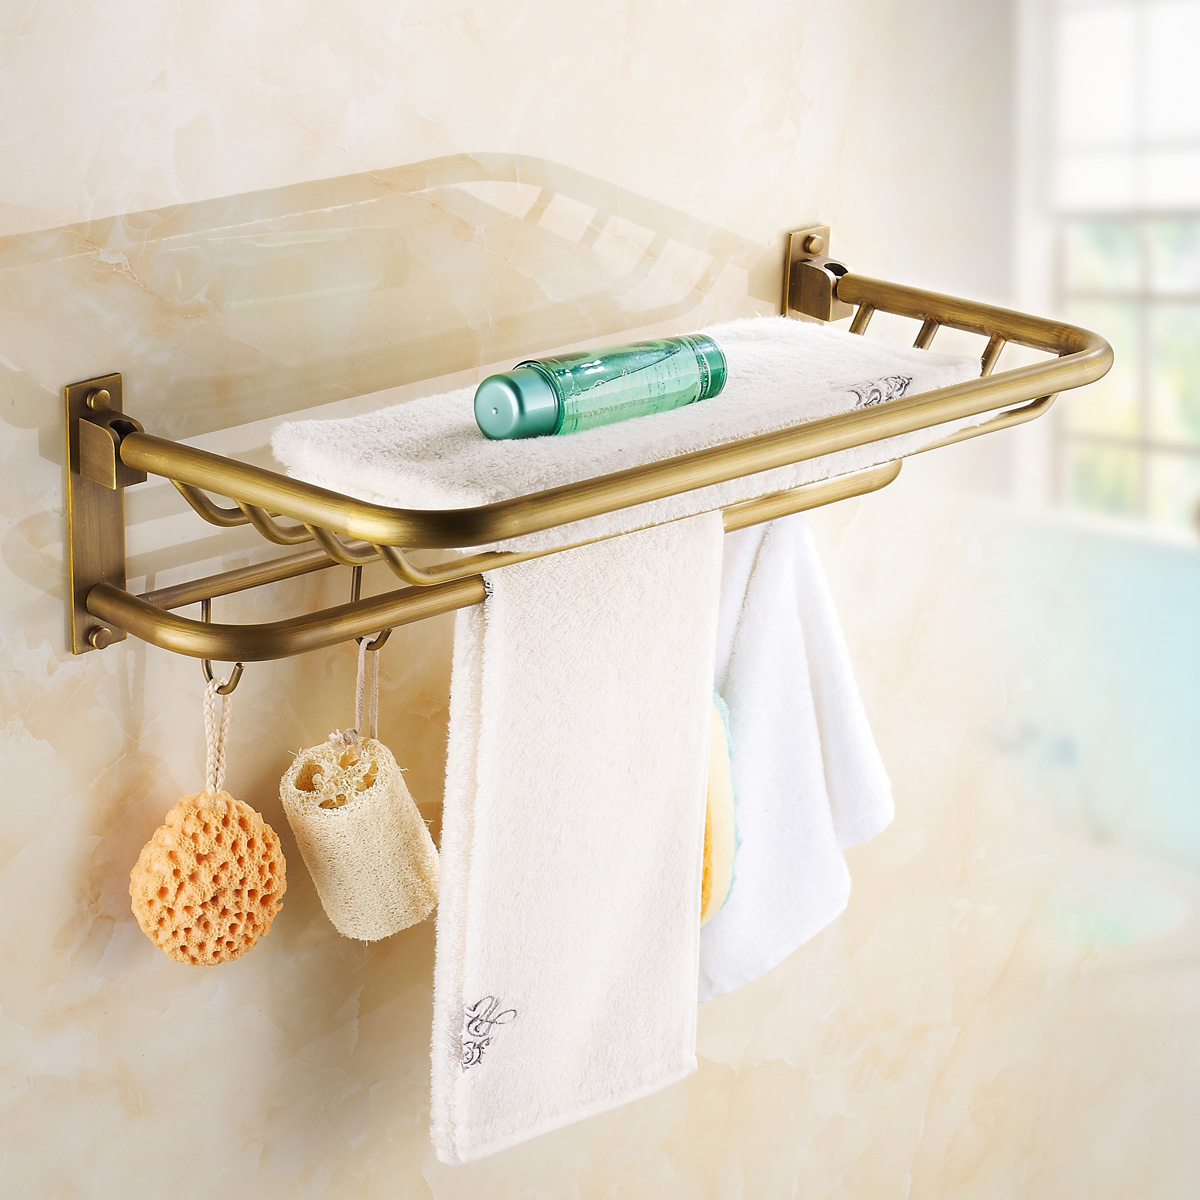 The whole european copper whole european antique copper folded towel rack towel rack bathroom toilet continental shelf